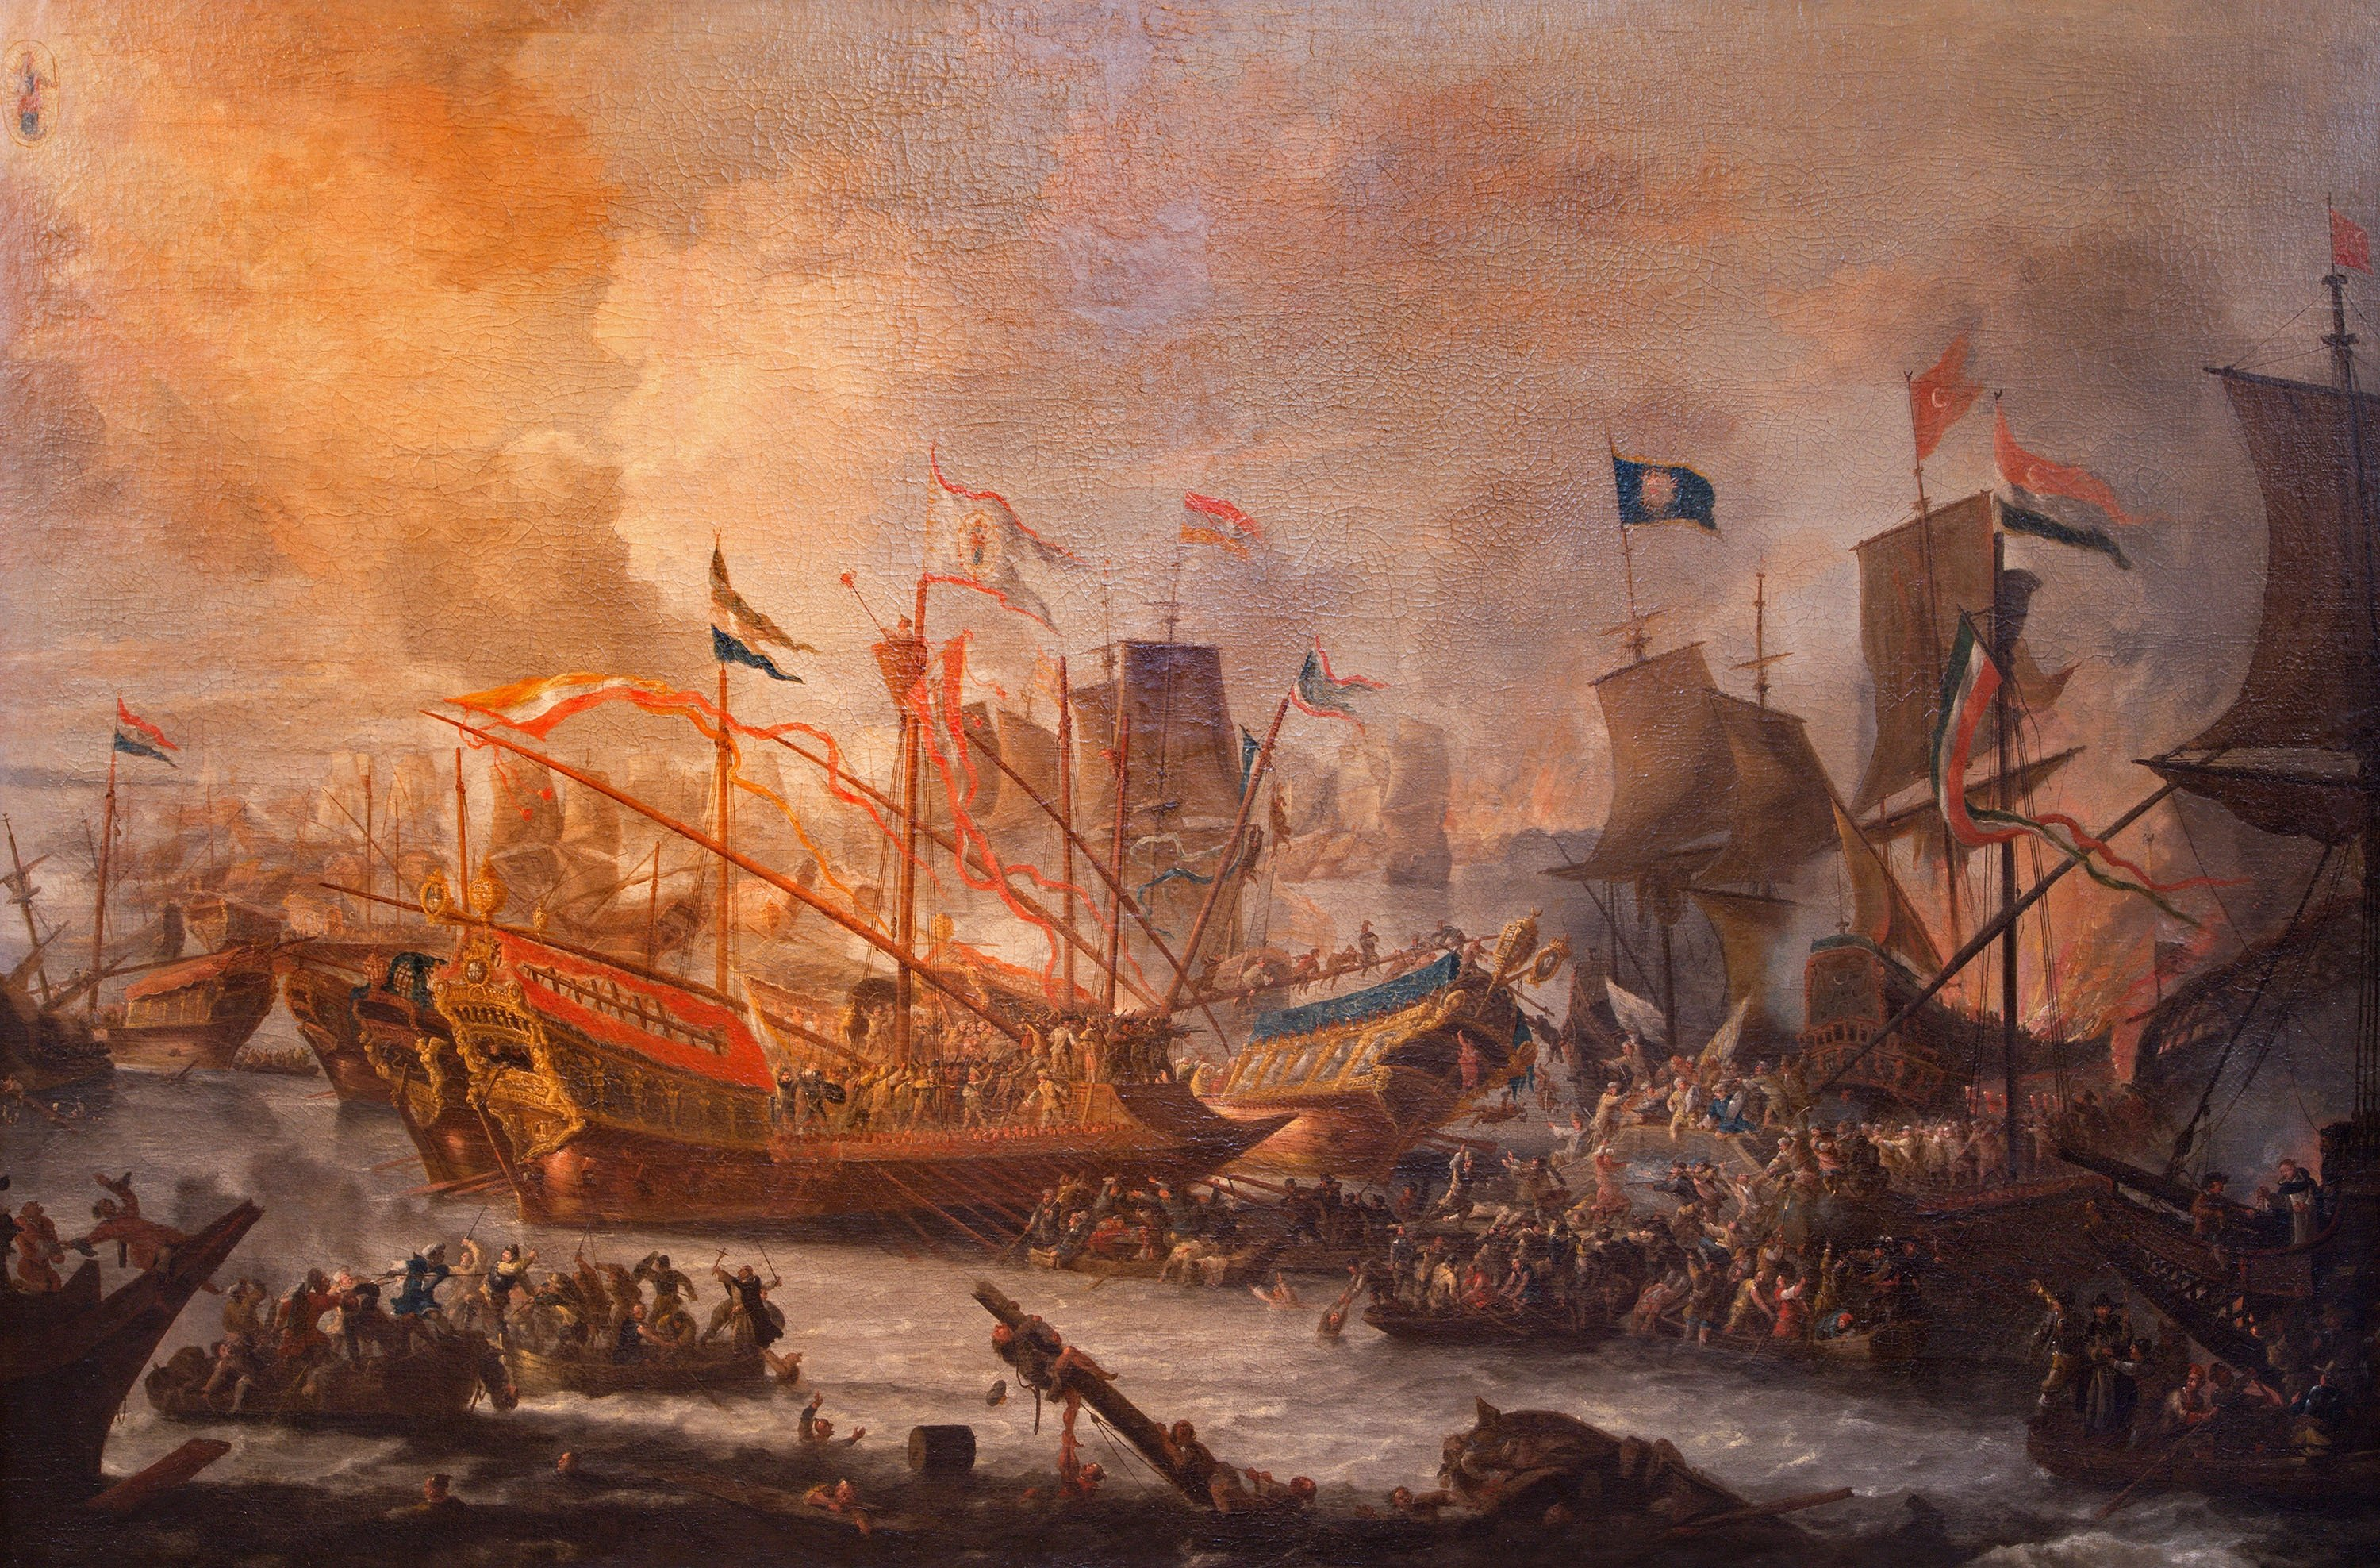 A paint of Battle of Lepanto by an unknown painter in St. Paul's Church in Antwerp, Belgium, Sept. 5, 2013. (Shutterstock Photo)